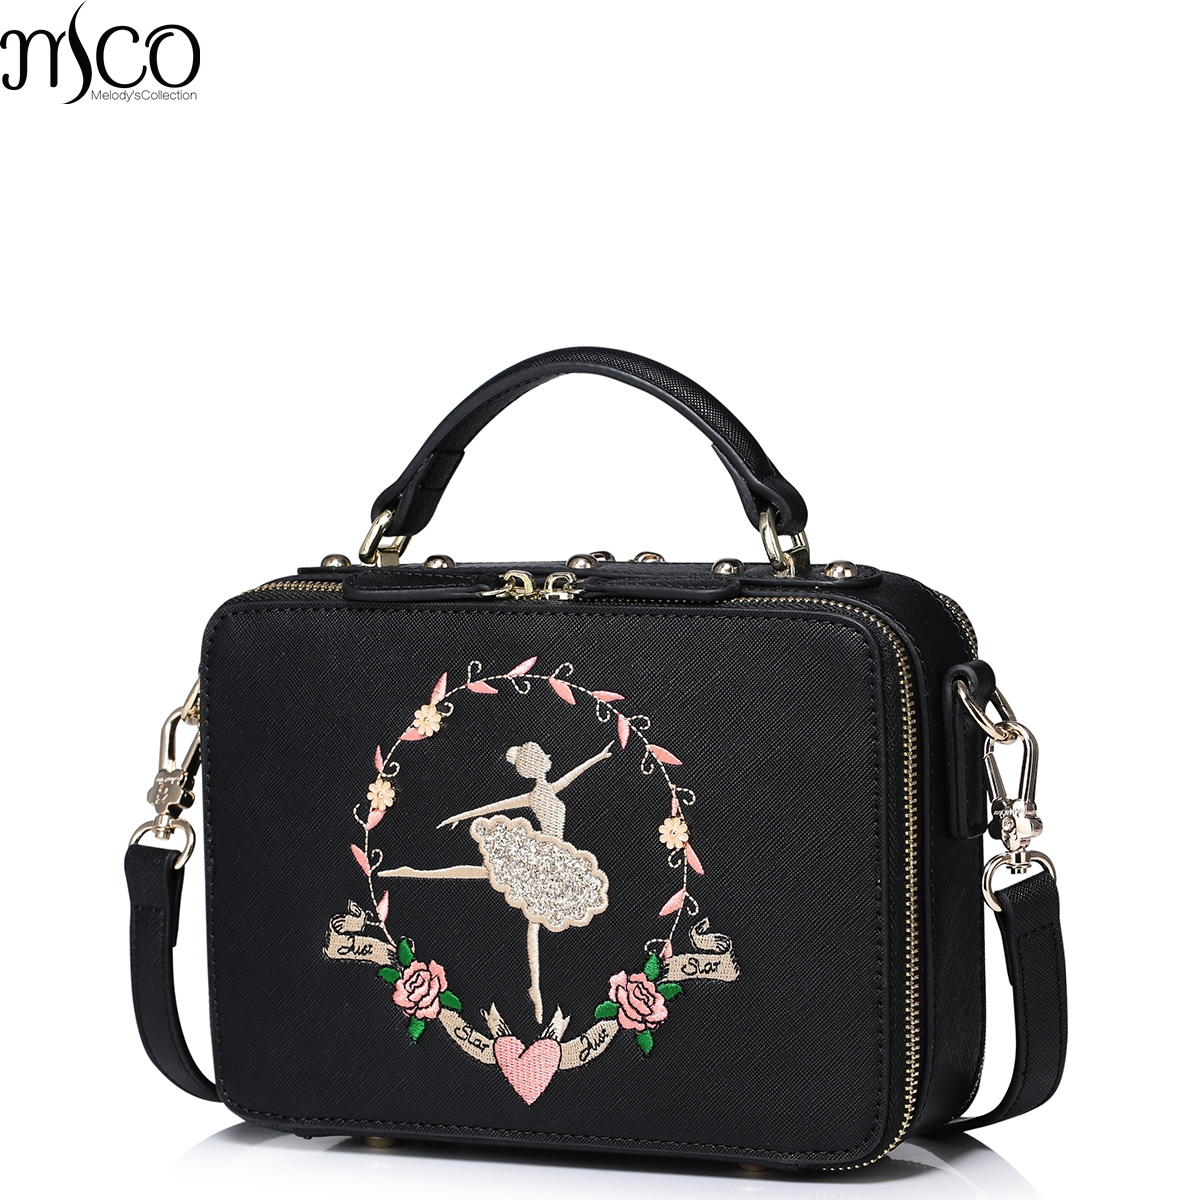 2017 Summer Luxury Flower Ballet Girl Embroidery Tote Handbags For Women PU Leather Shoulder Bag Double Zipper Messenger Bags<br>